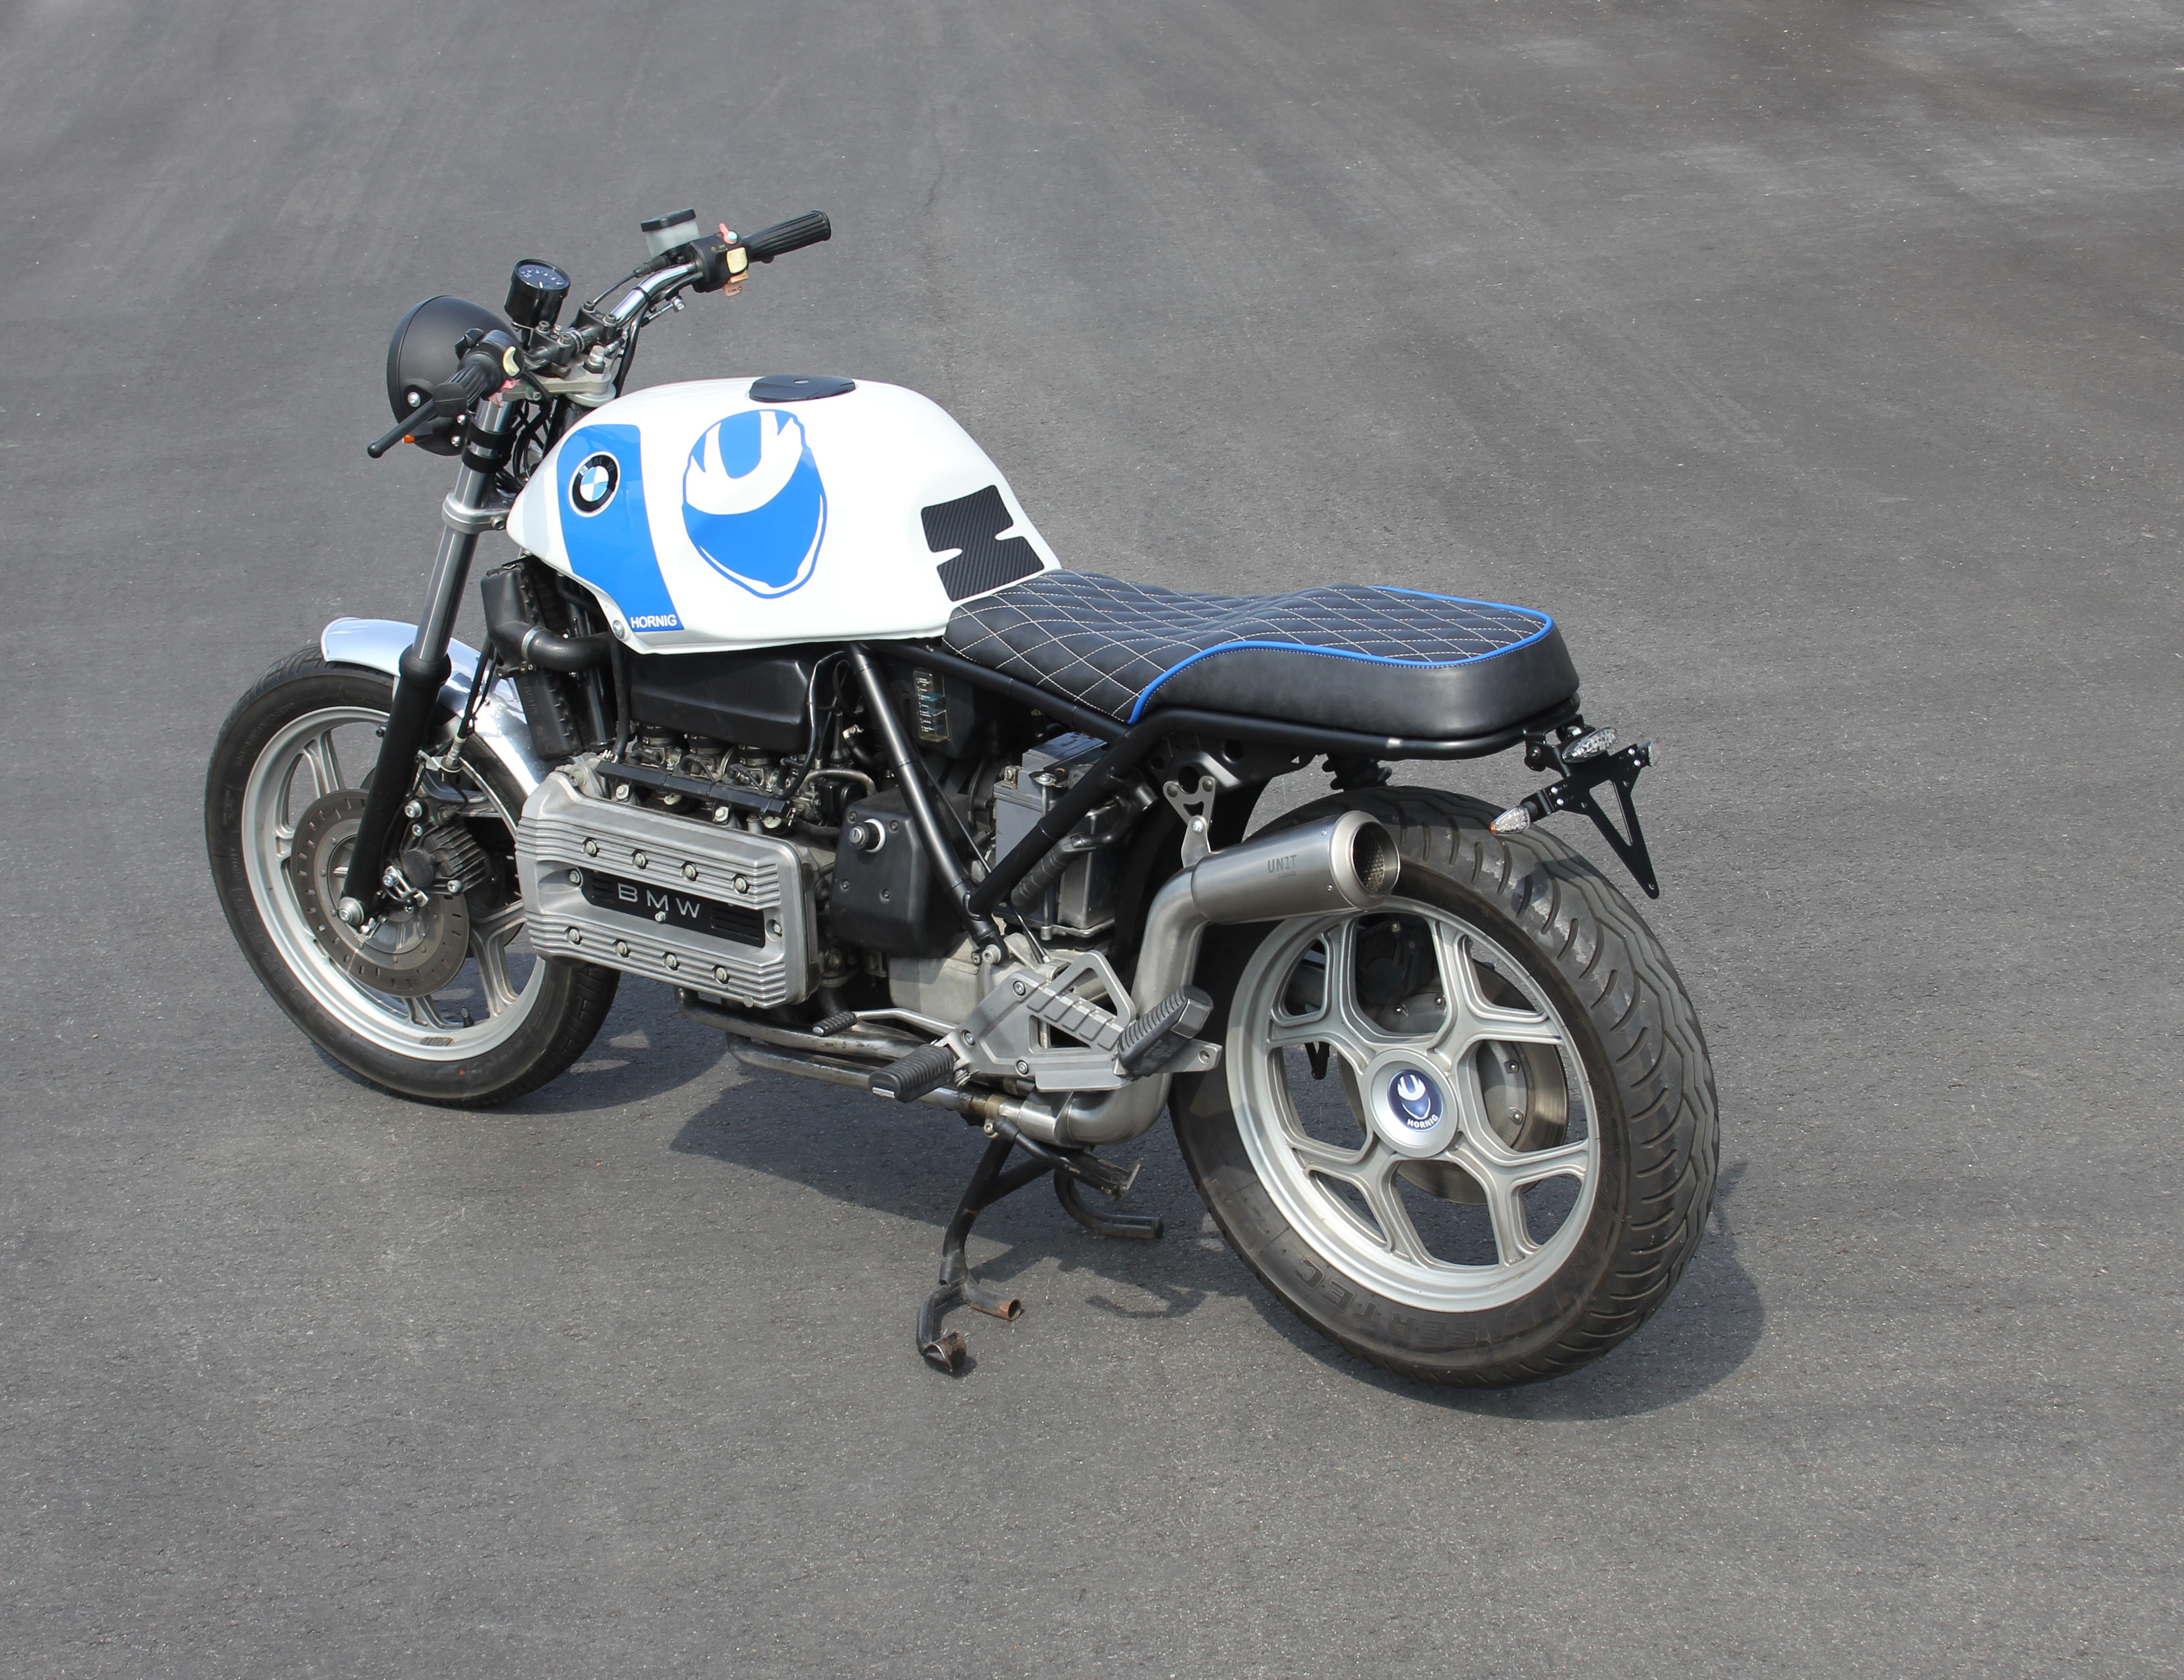 Bmw K100rs Café Racer By Hornig Trendy Retro Look With Tüv Approval